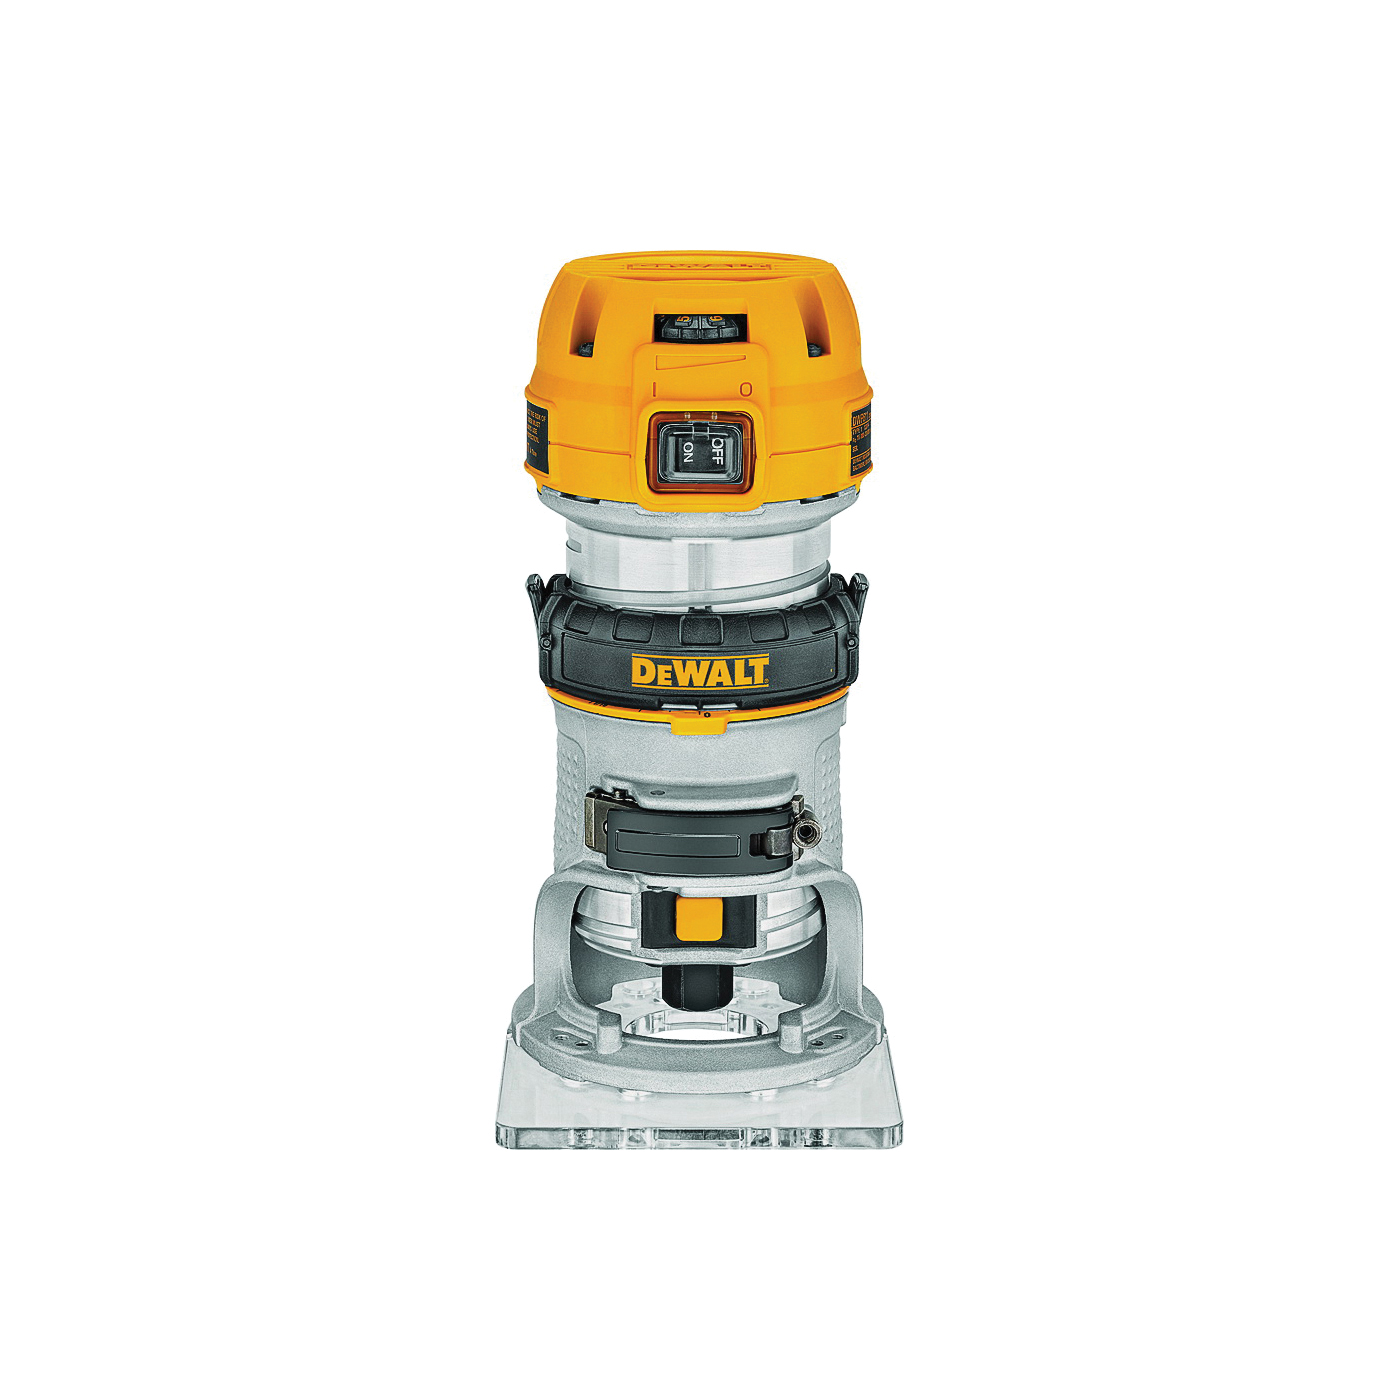 Picture of DeWALT DWP611 Compact Router with LED, 120 V, 7 A, 16,000 to 27,000 rpm No Load